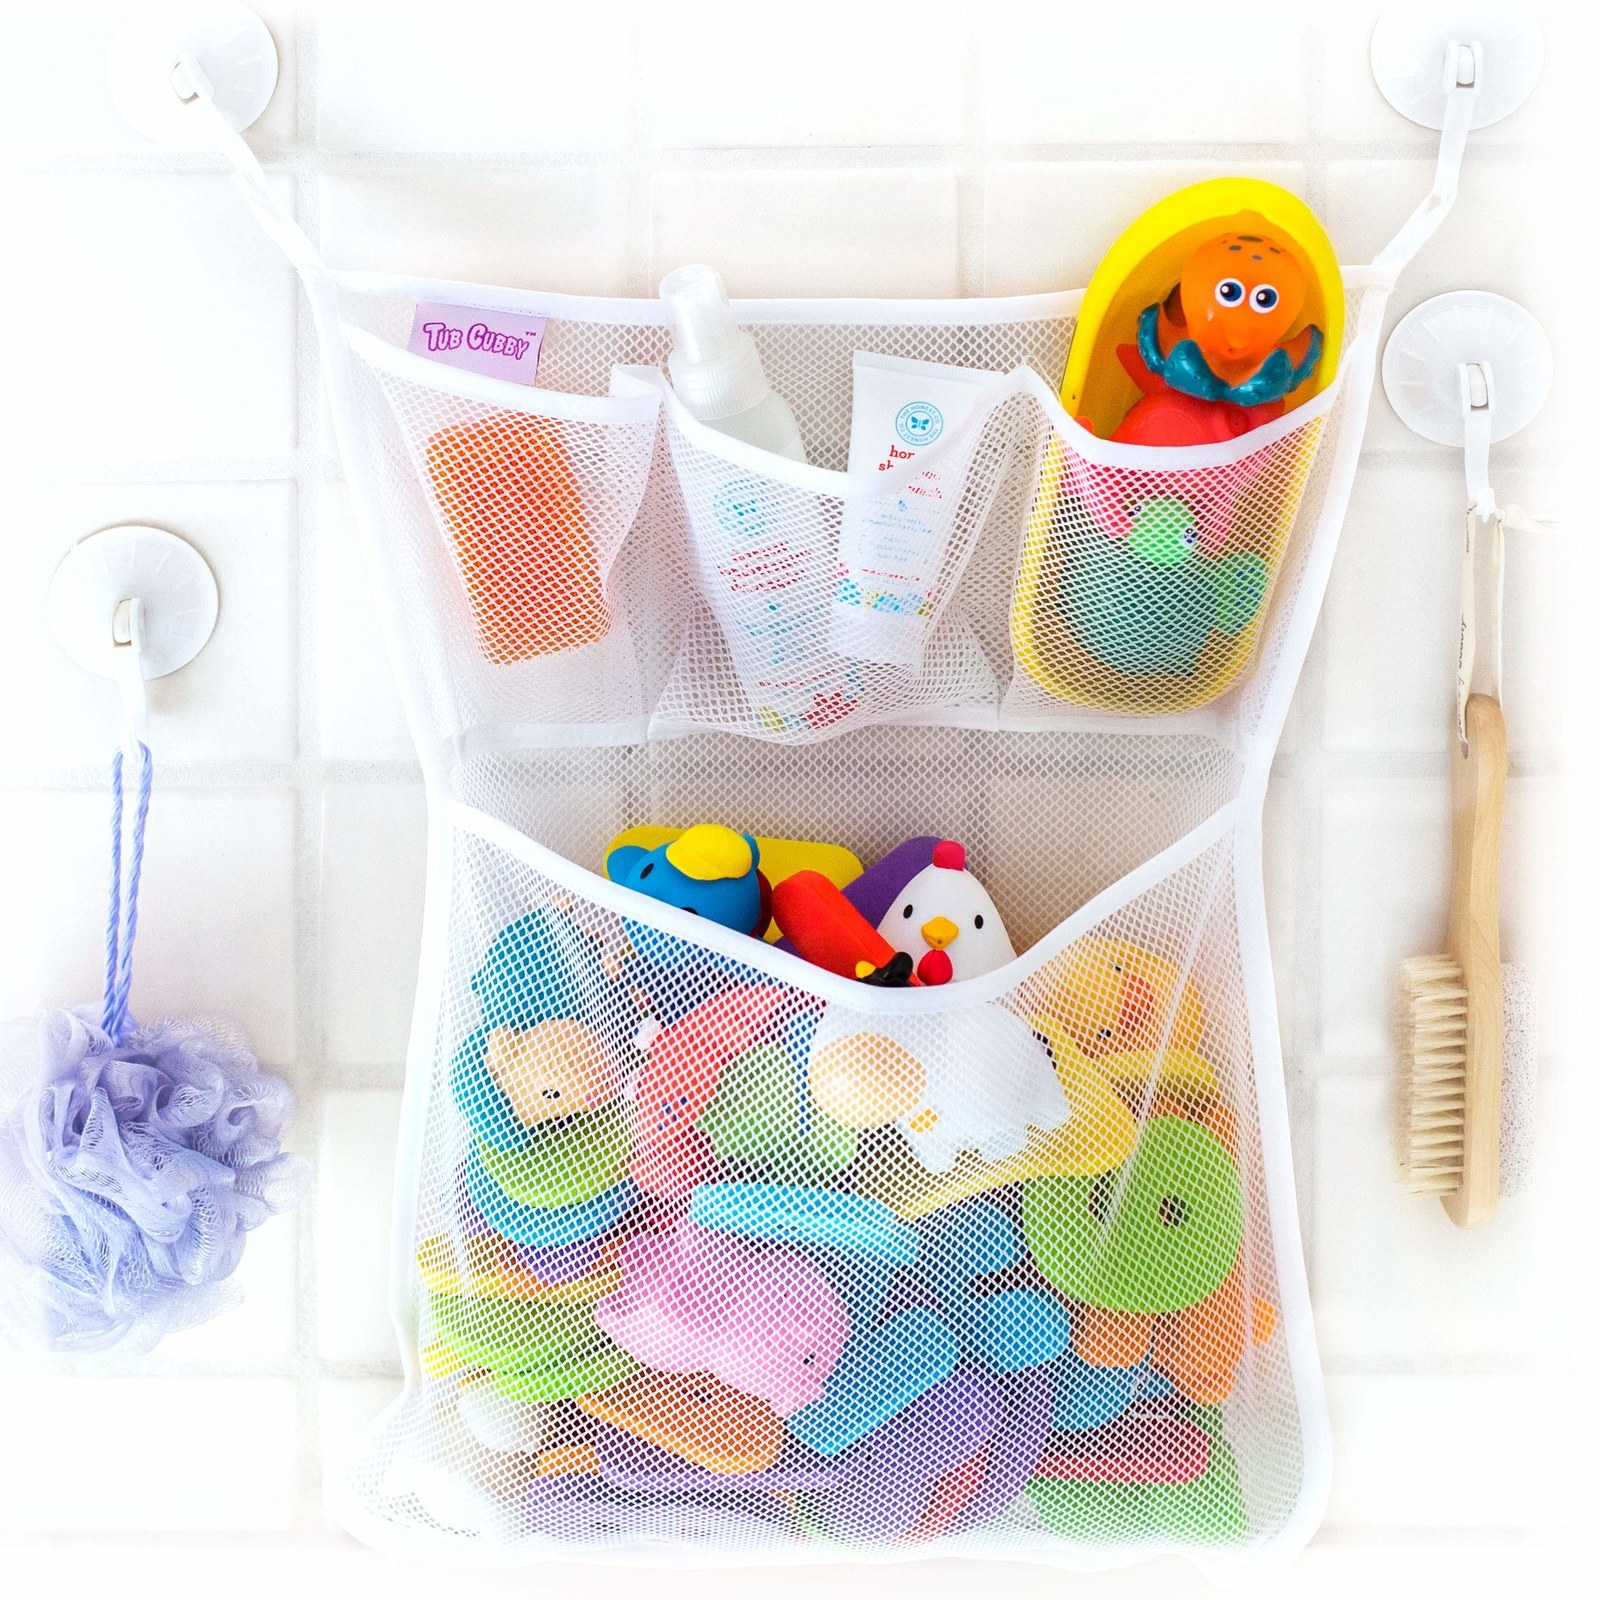 The net holding a variety of children's bath toys and supplies